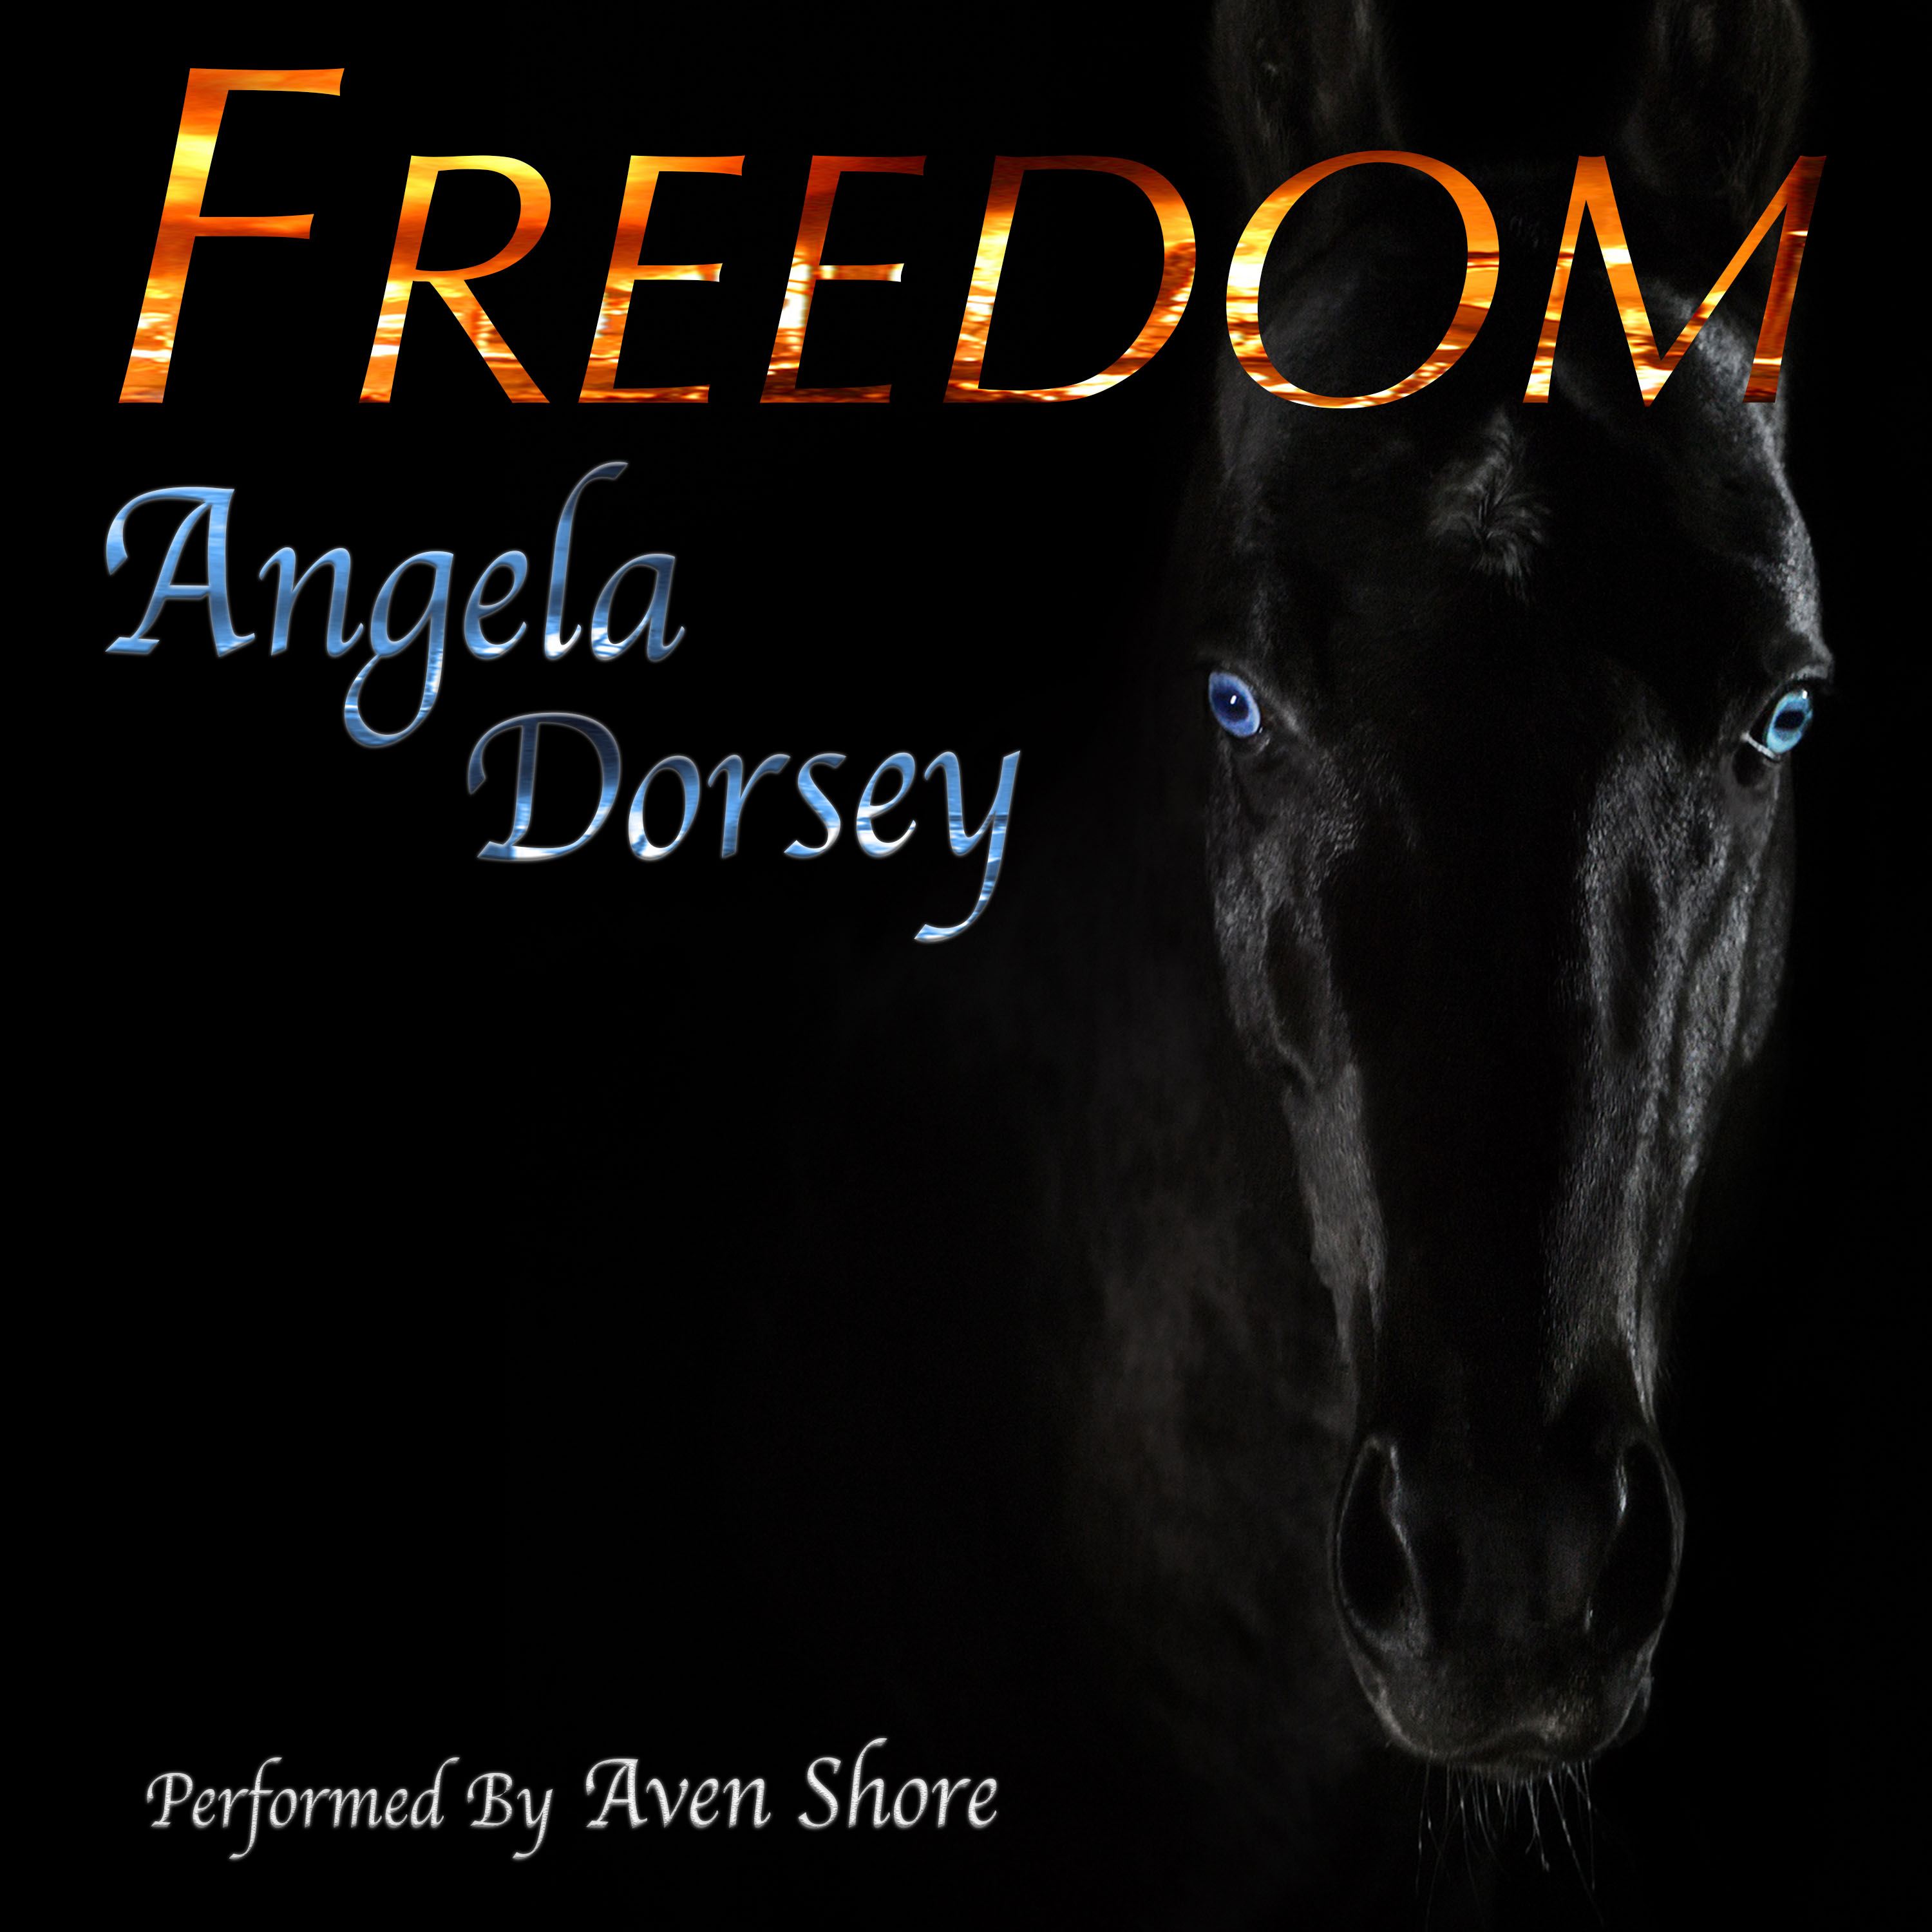 Audiobook cover for the juvenile fiction novel Freedom aka A Horse Called Freedom by Angela Dorsey